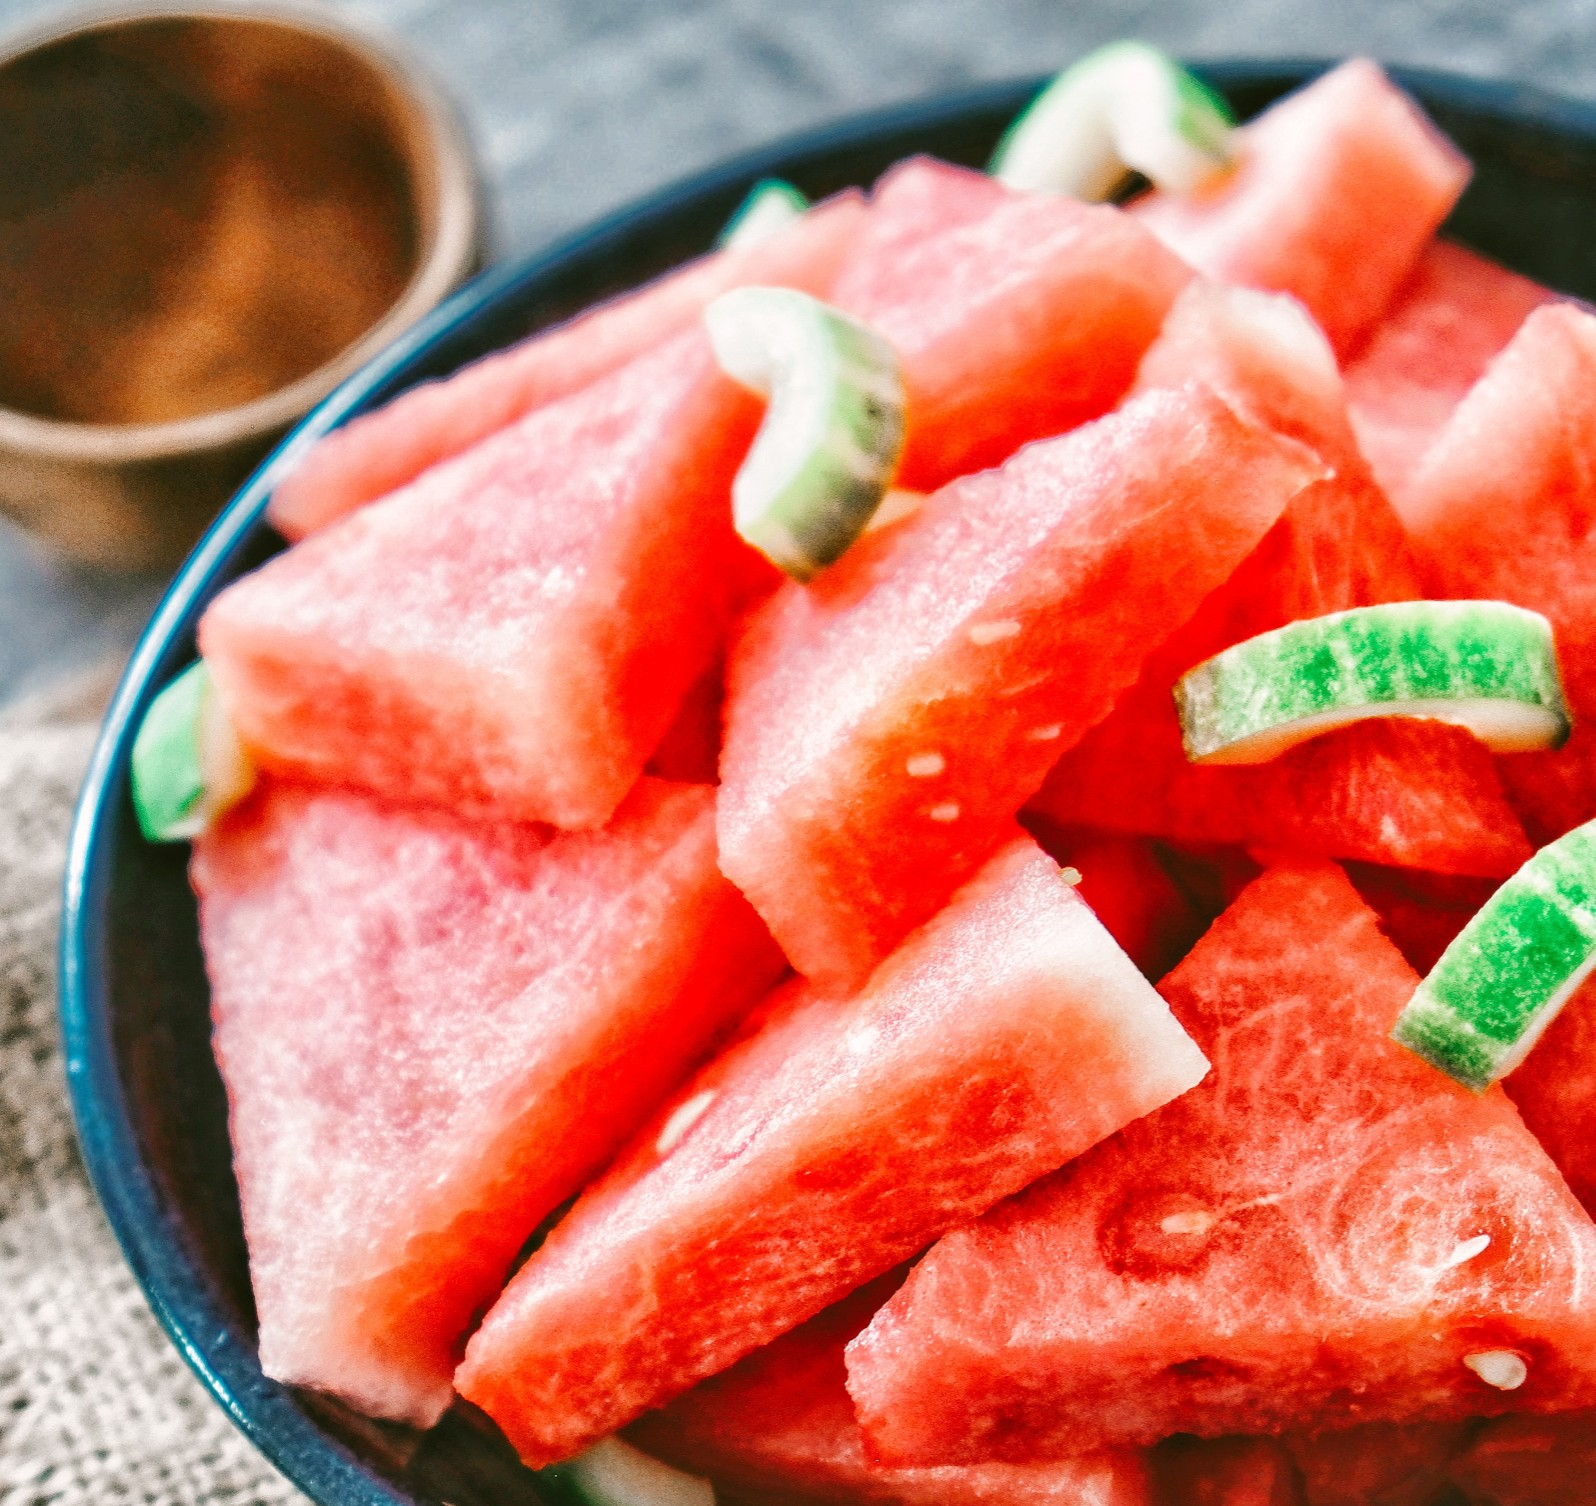 Tequila-Soaked Watermelon photo